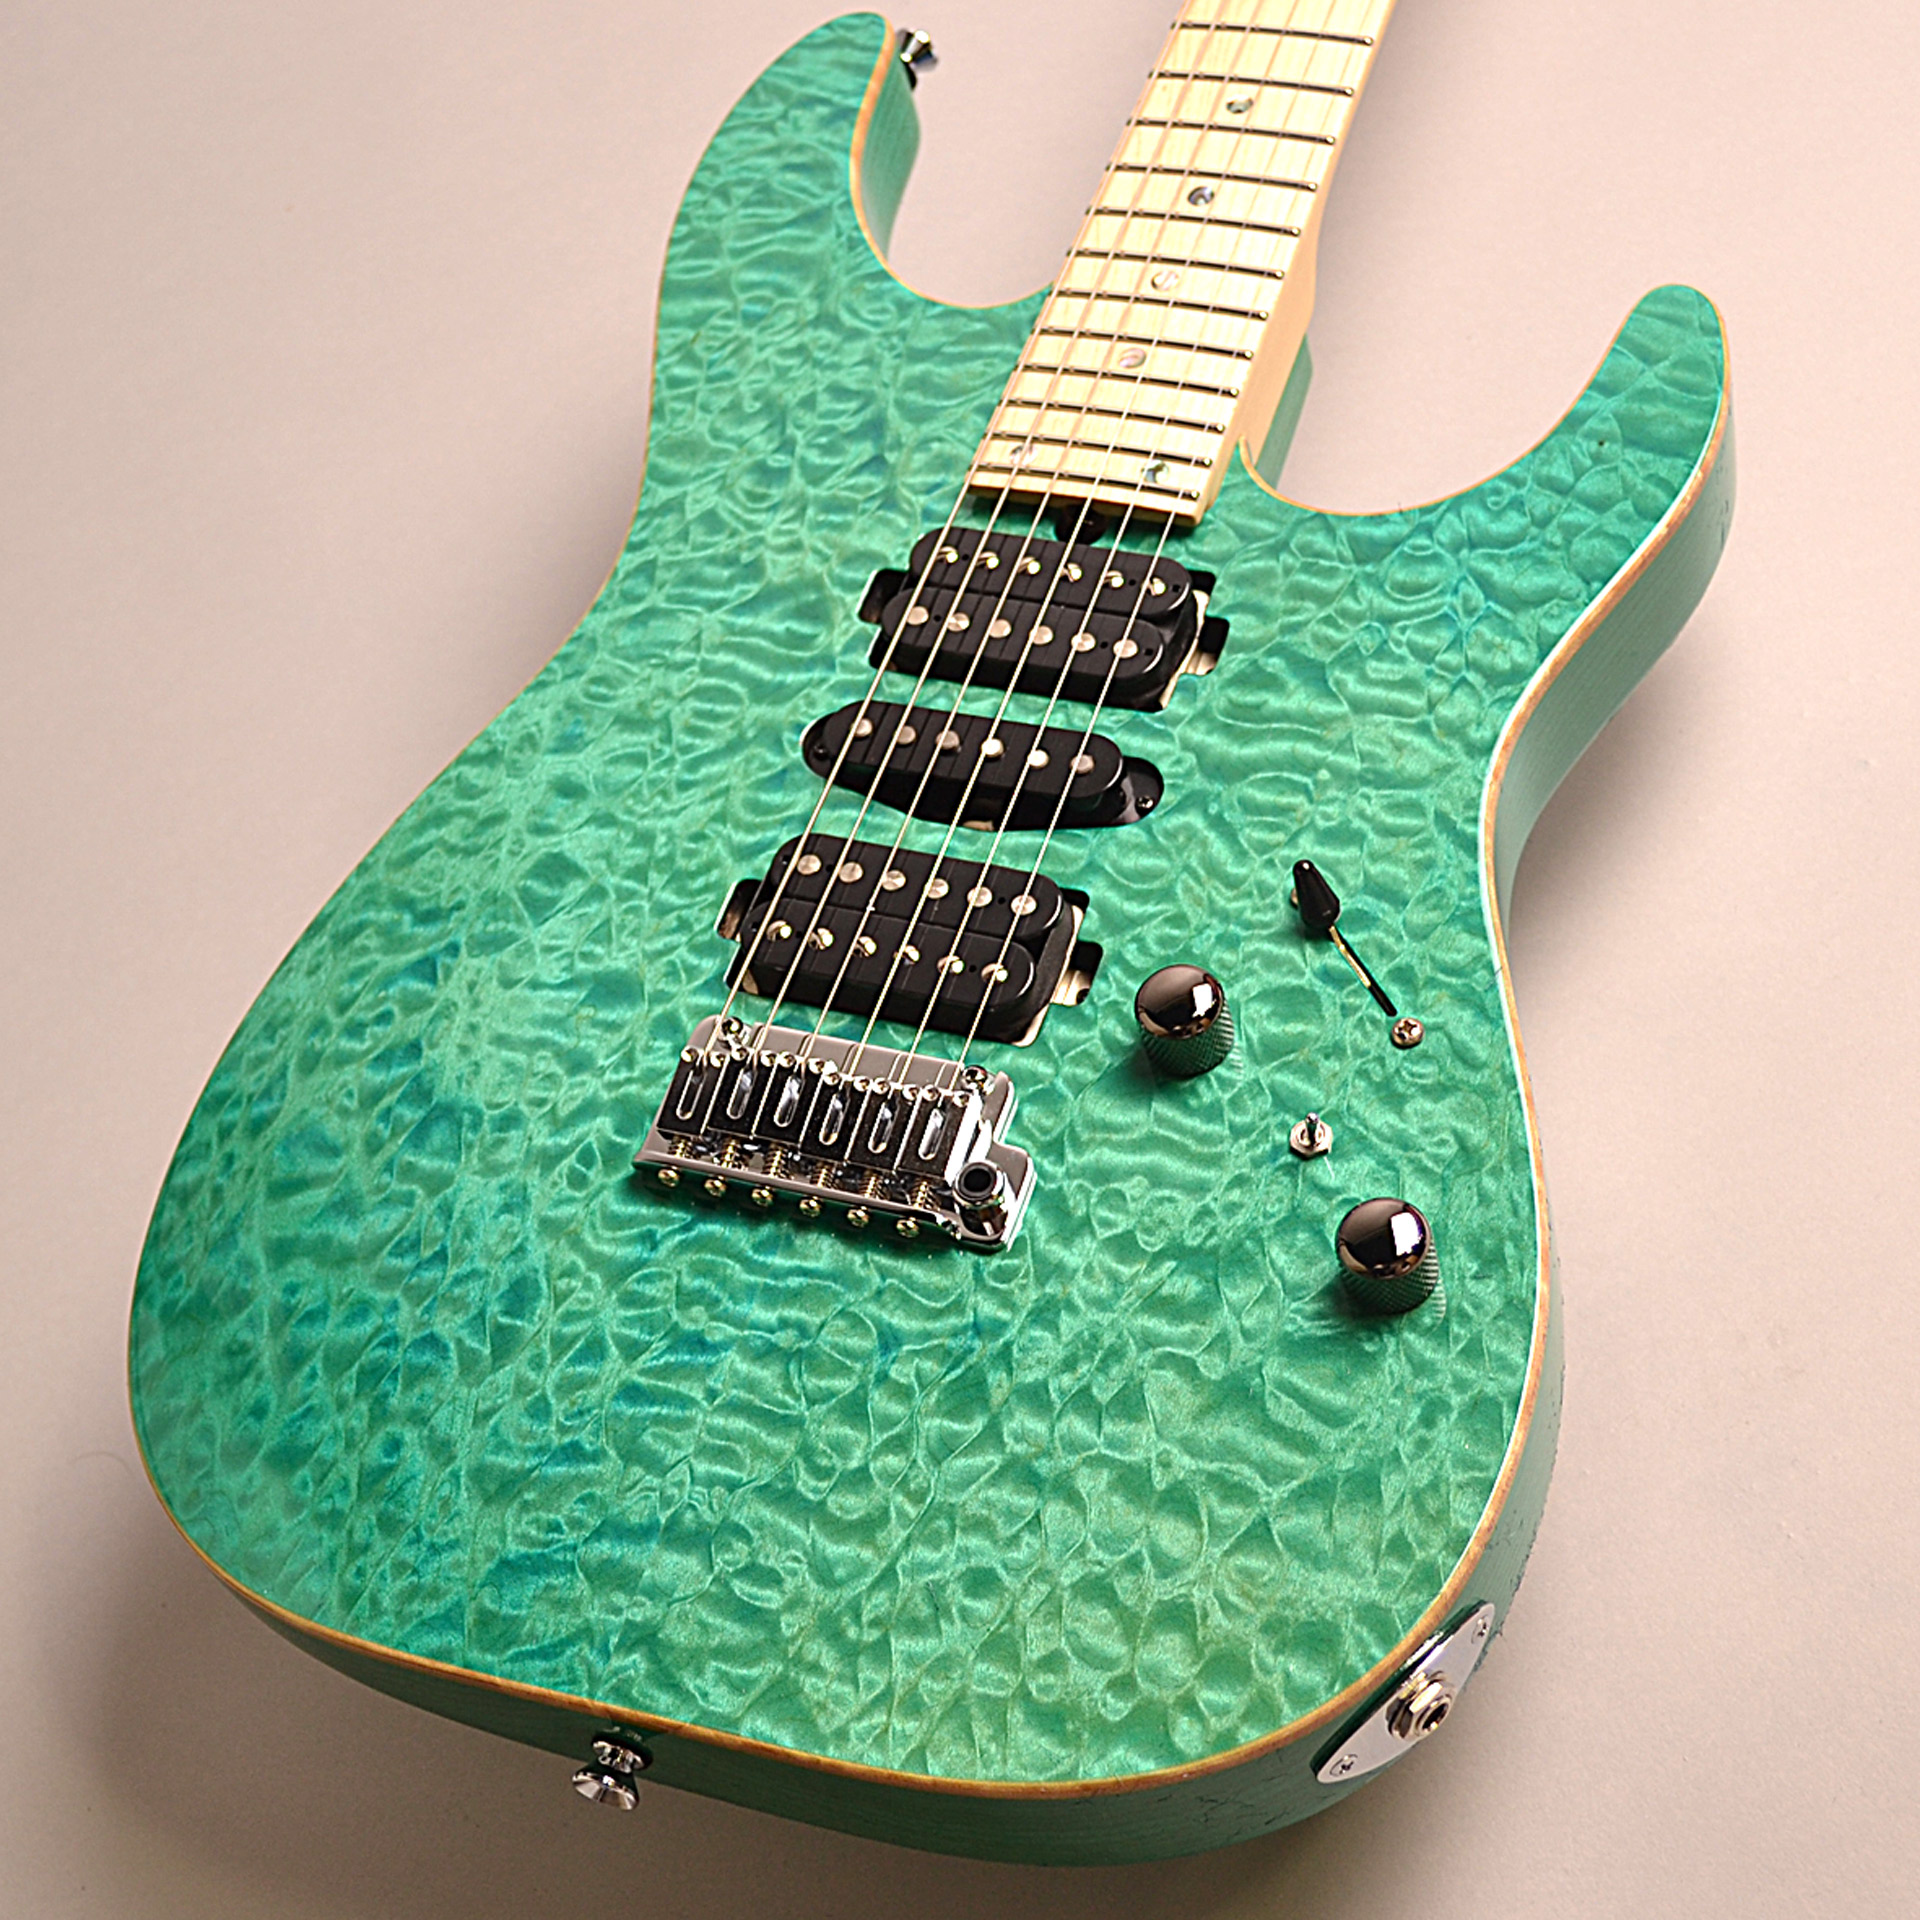 T's Guitars DST-PRO24 Maple (BoraBoraBlue)のボディバック-アップ画像